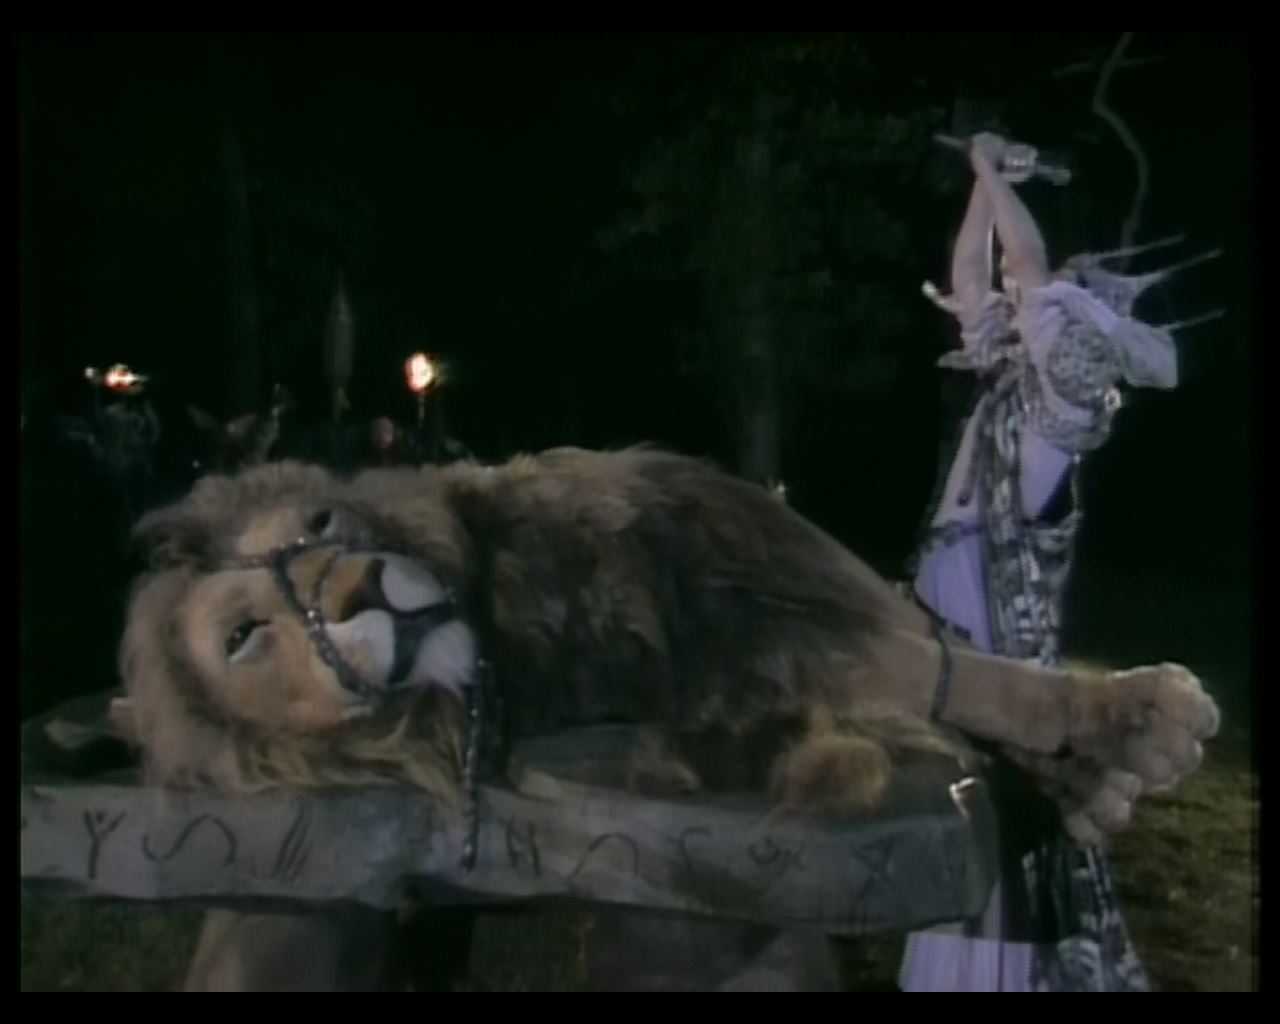 Narnia The Lion The Witch And The Wardrobe Characters Aslan's Light: Aslan.....